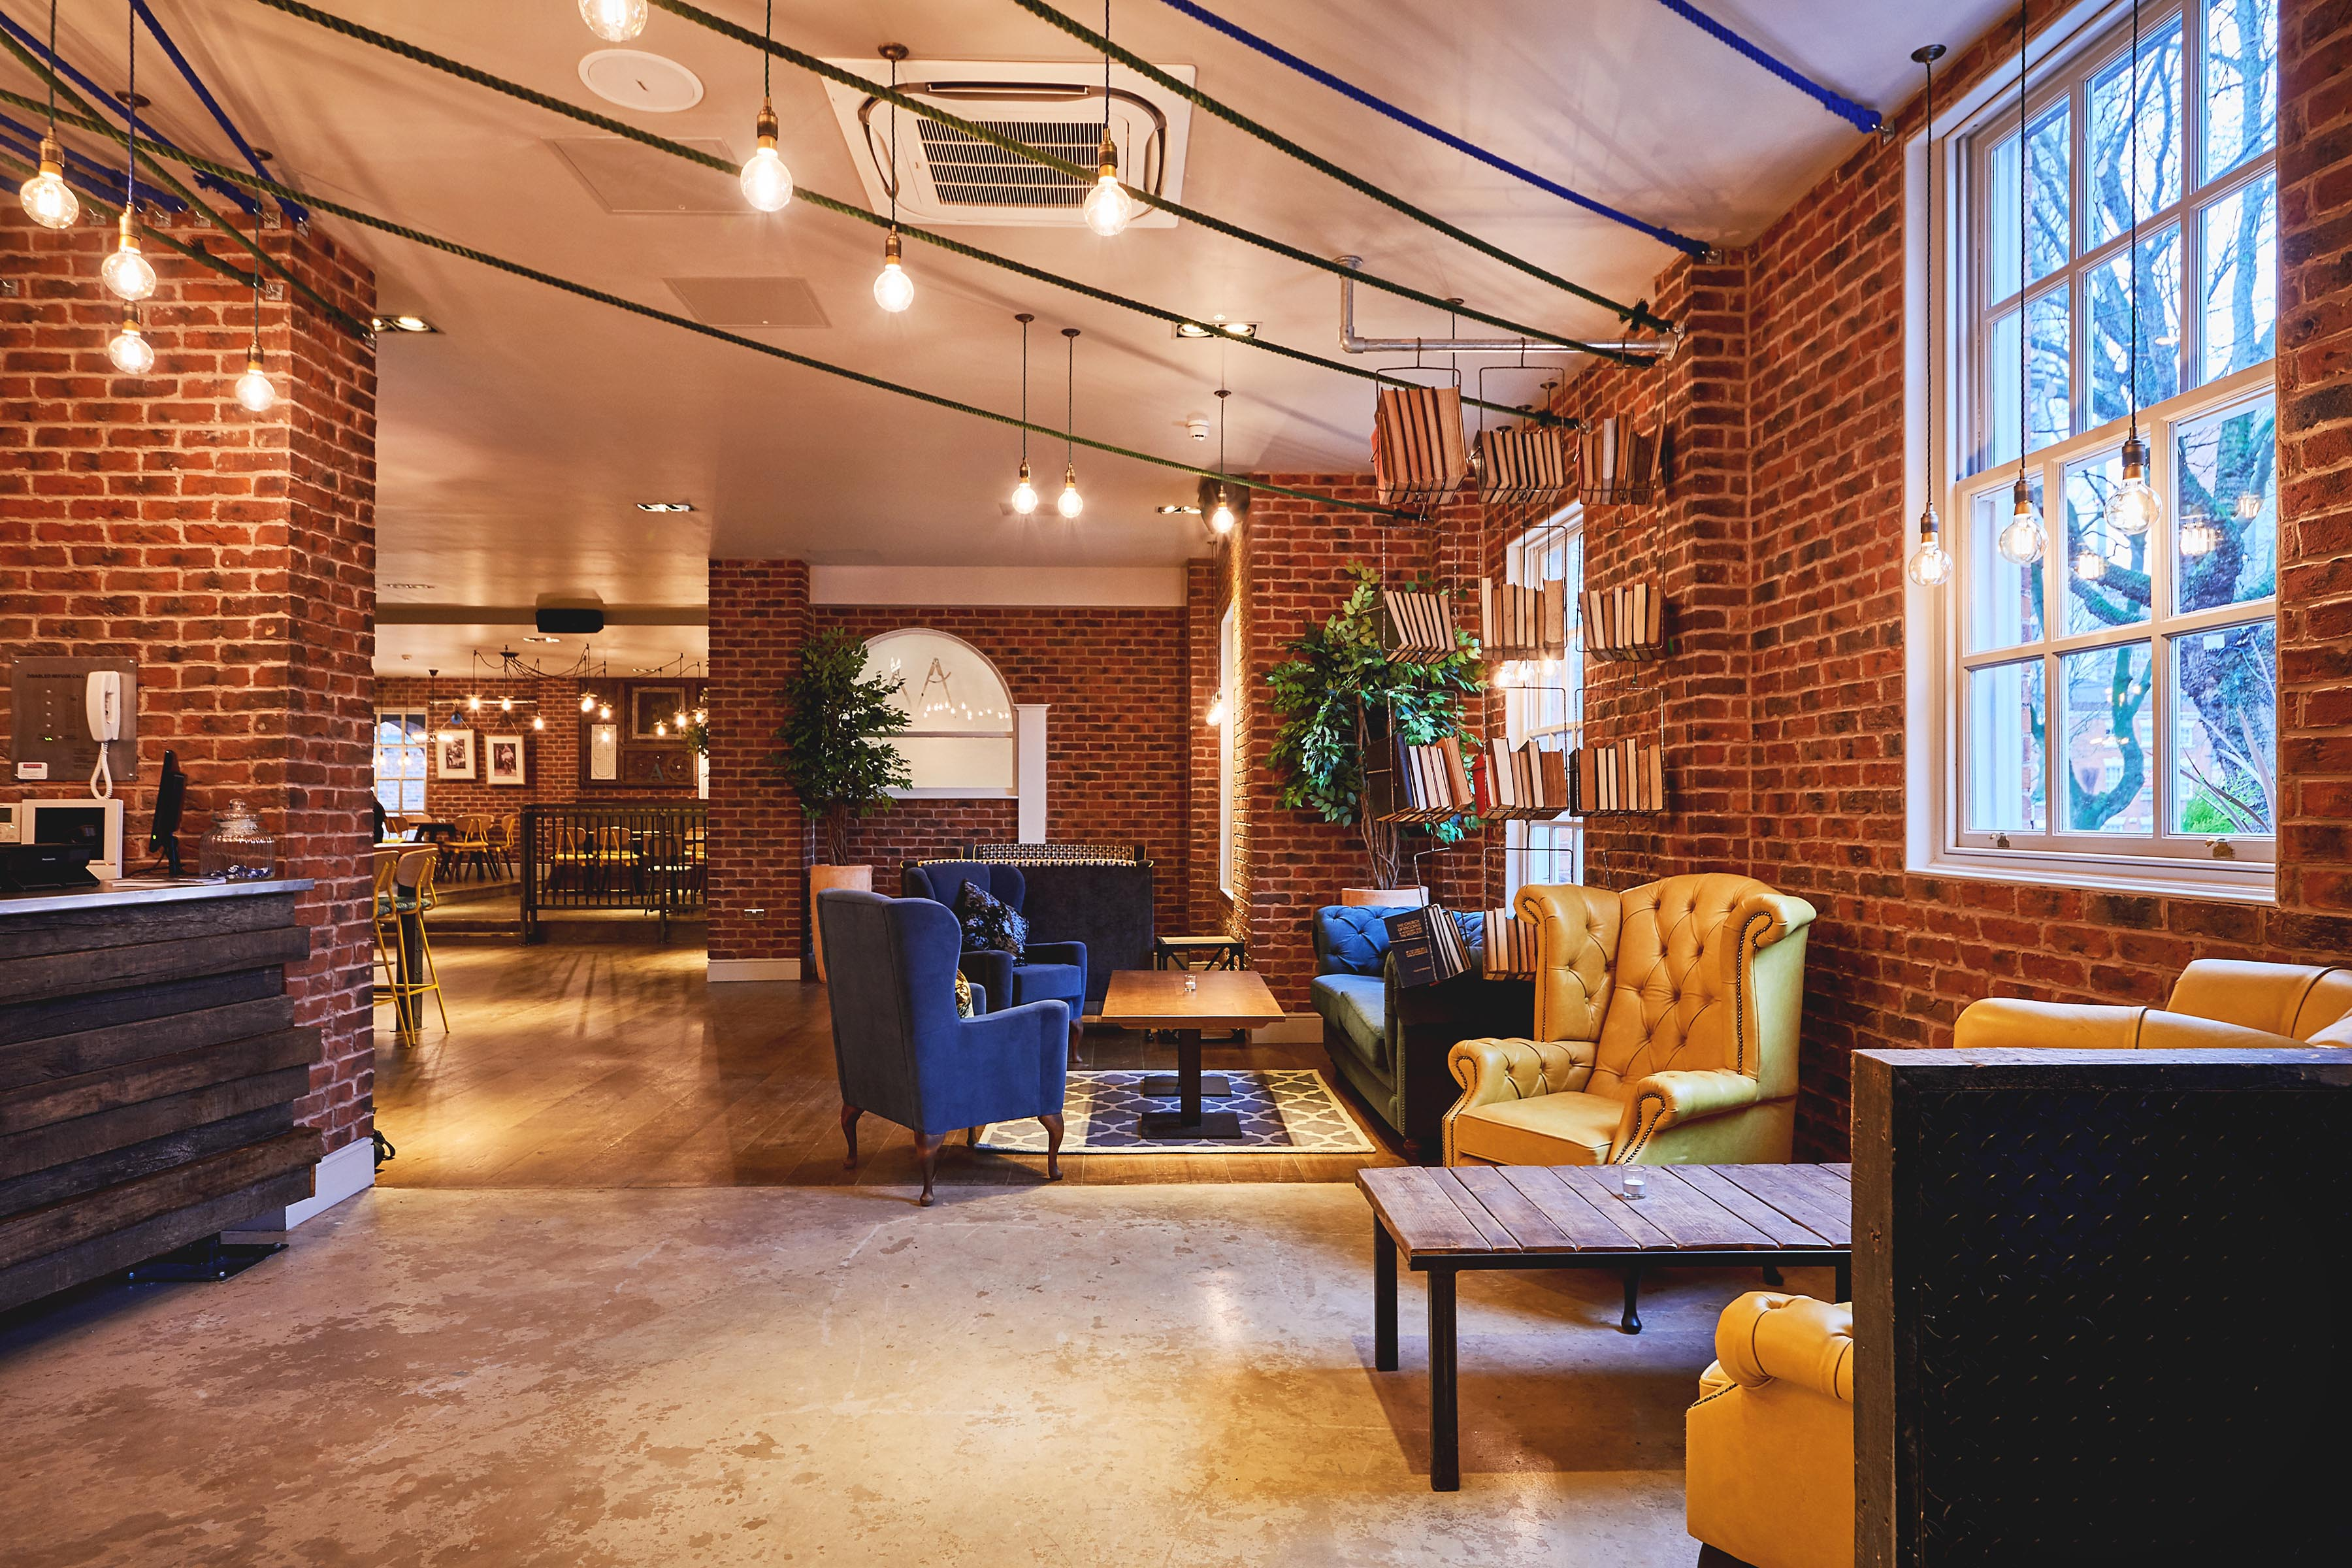 ... Quirky And Cool Bar Restaurant Design